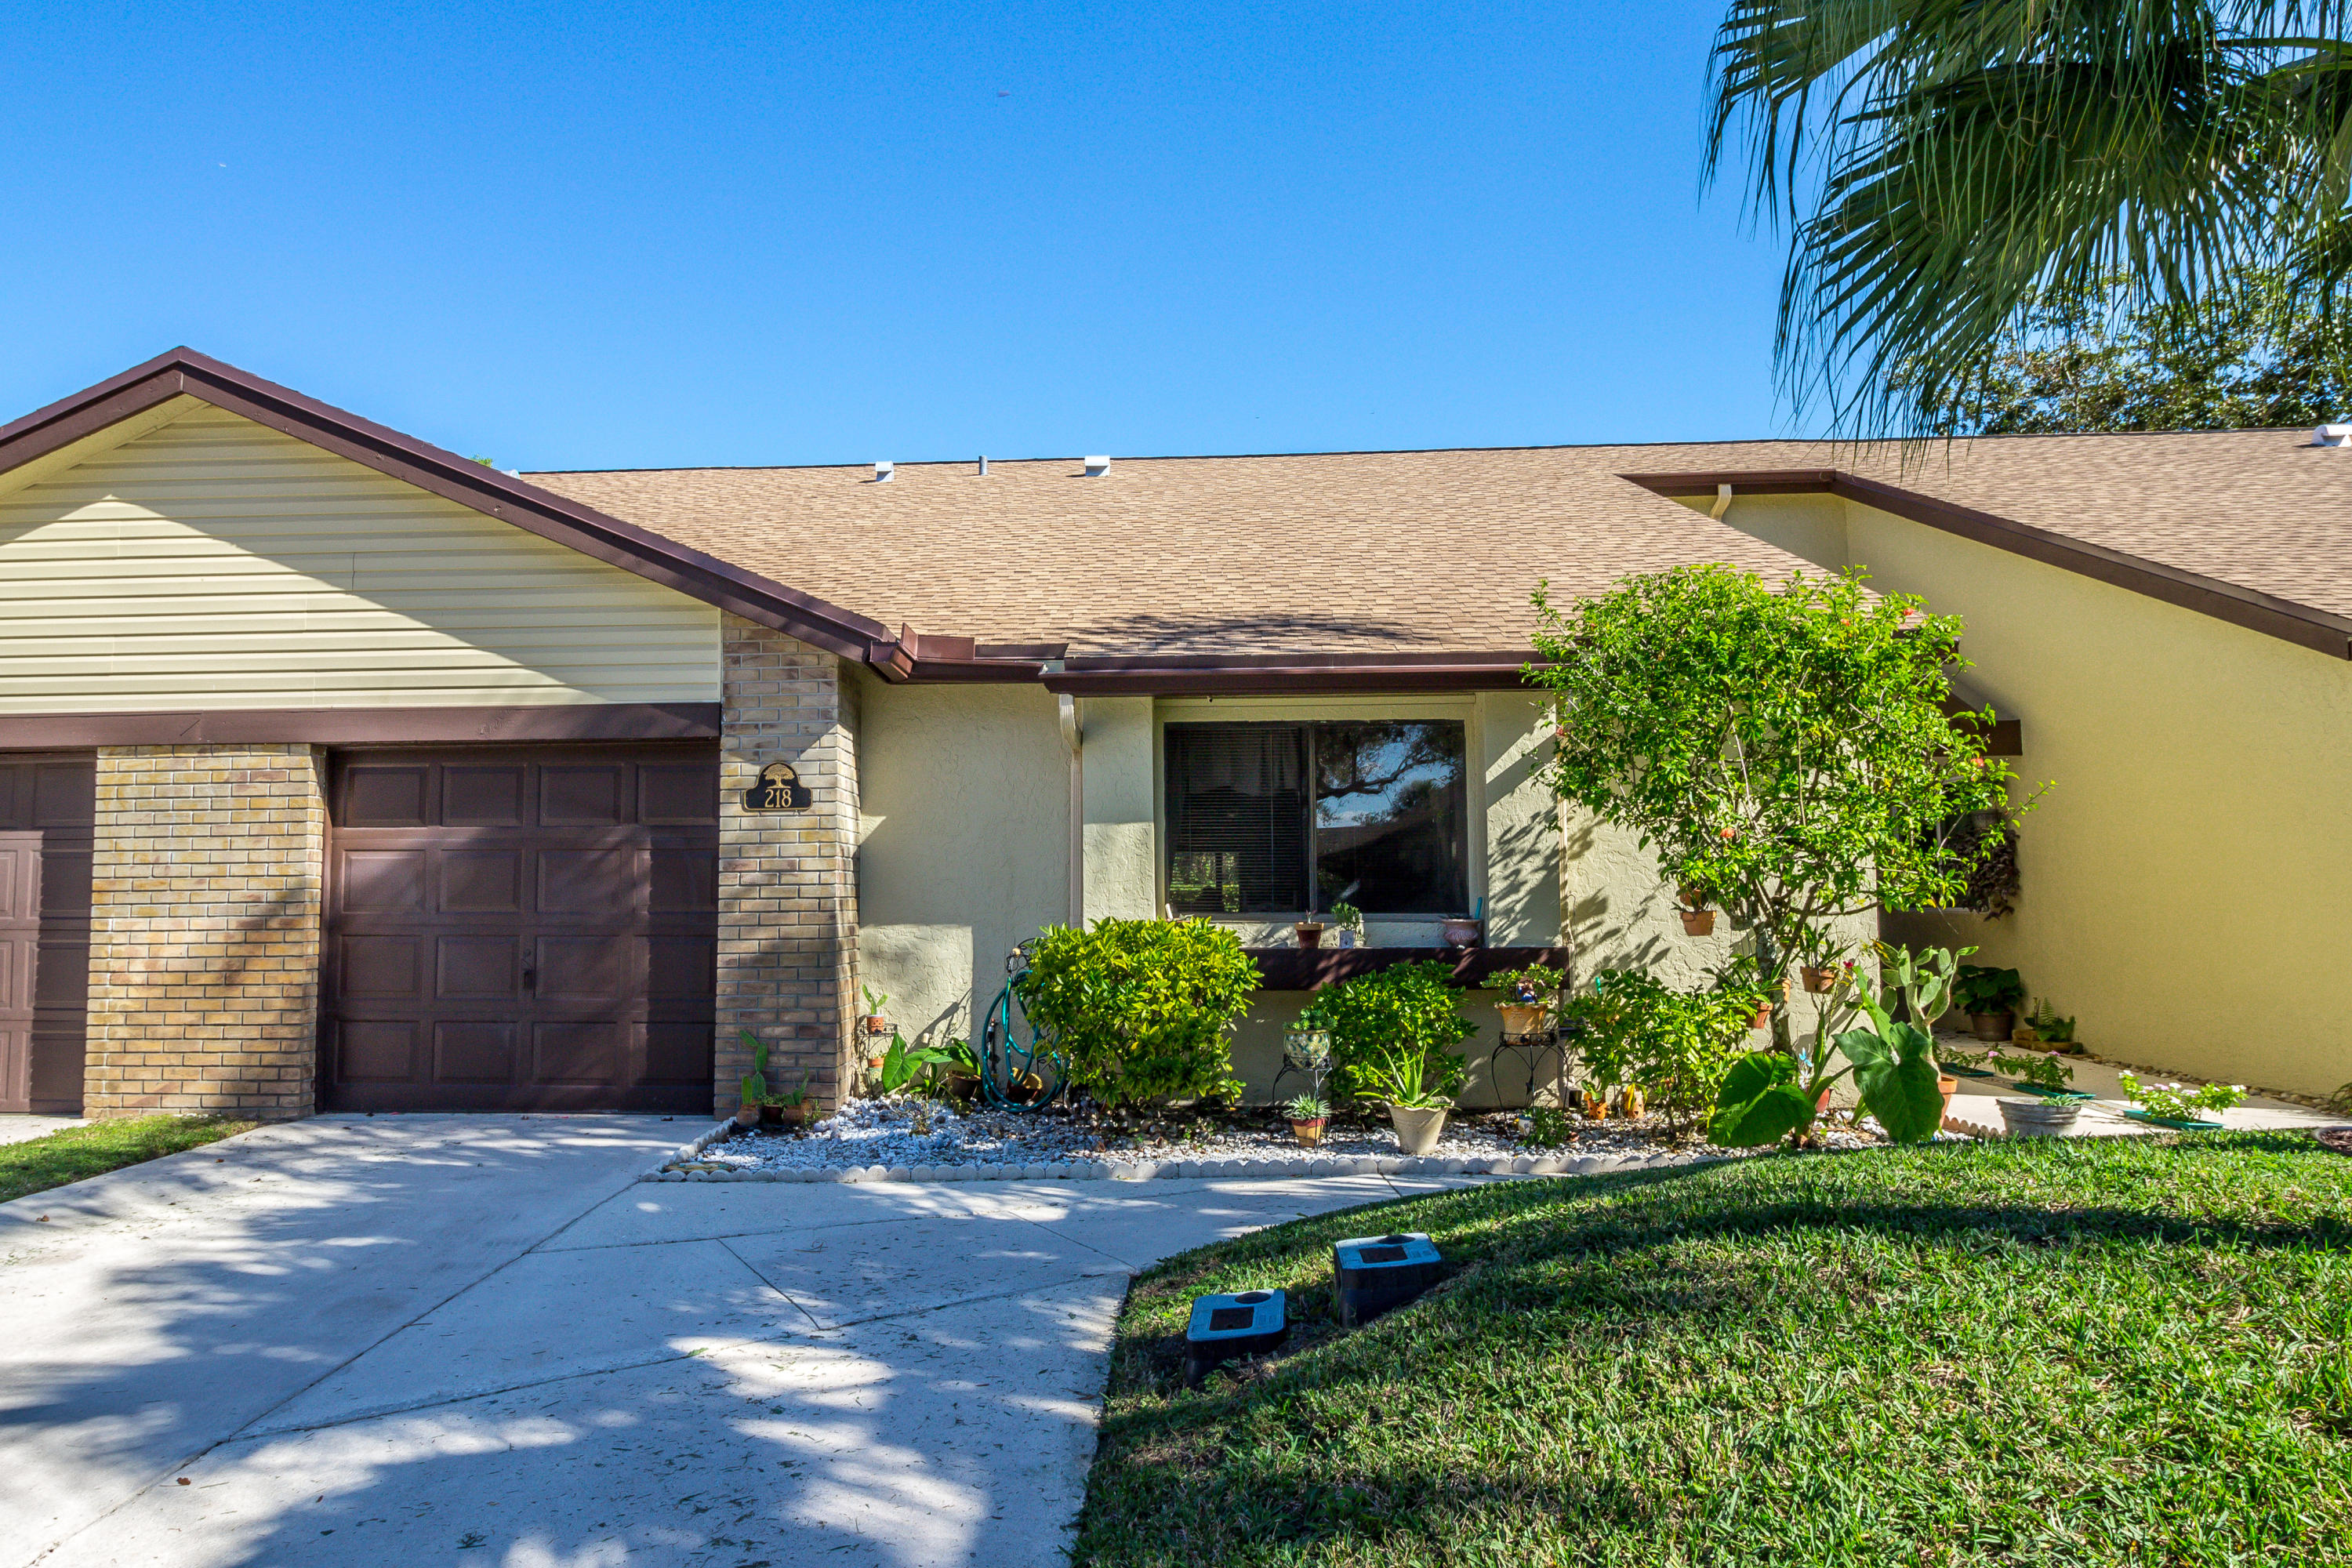 218 Meander Circle Royal Palm Beach, FL 33411 Royal Palm Beach FL 33411